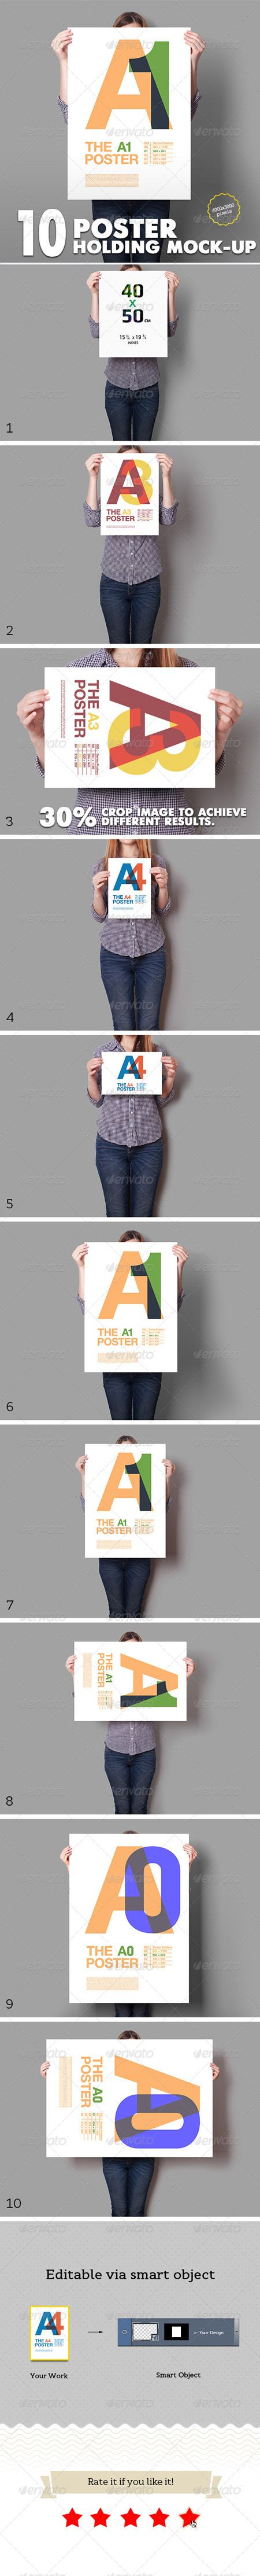 6 poster design photo mockups 57079 - Poster Mockup 10 Different Images 5788286 Free Special Gfx Posts Vectors Aep Projects Psd Web